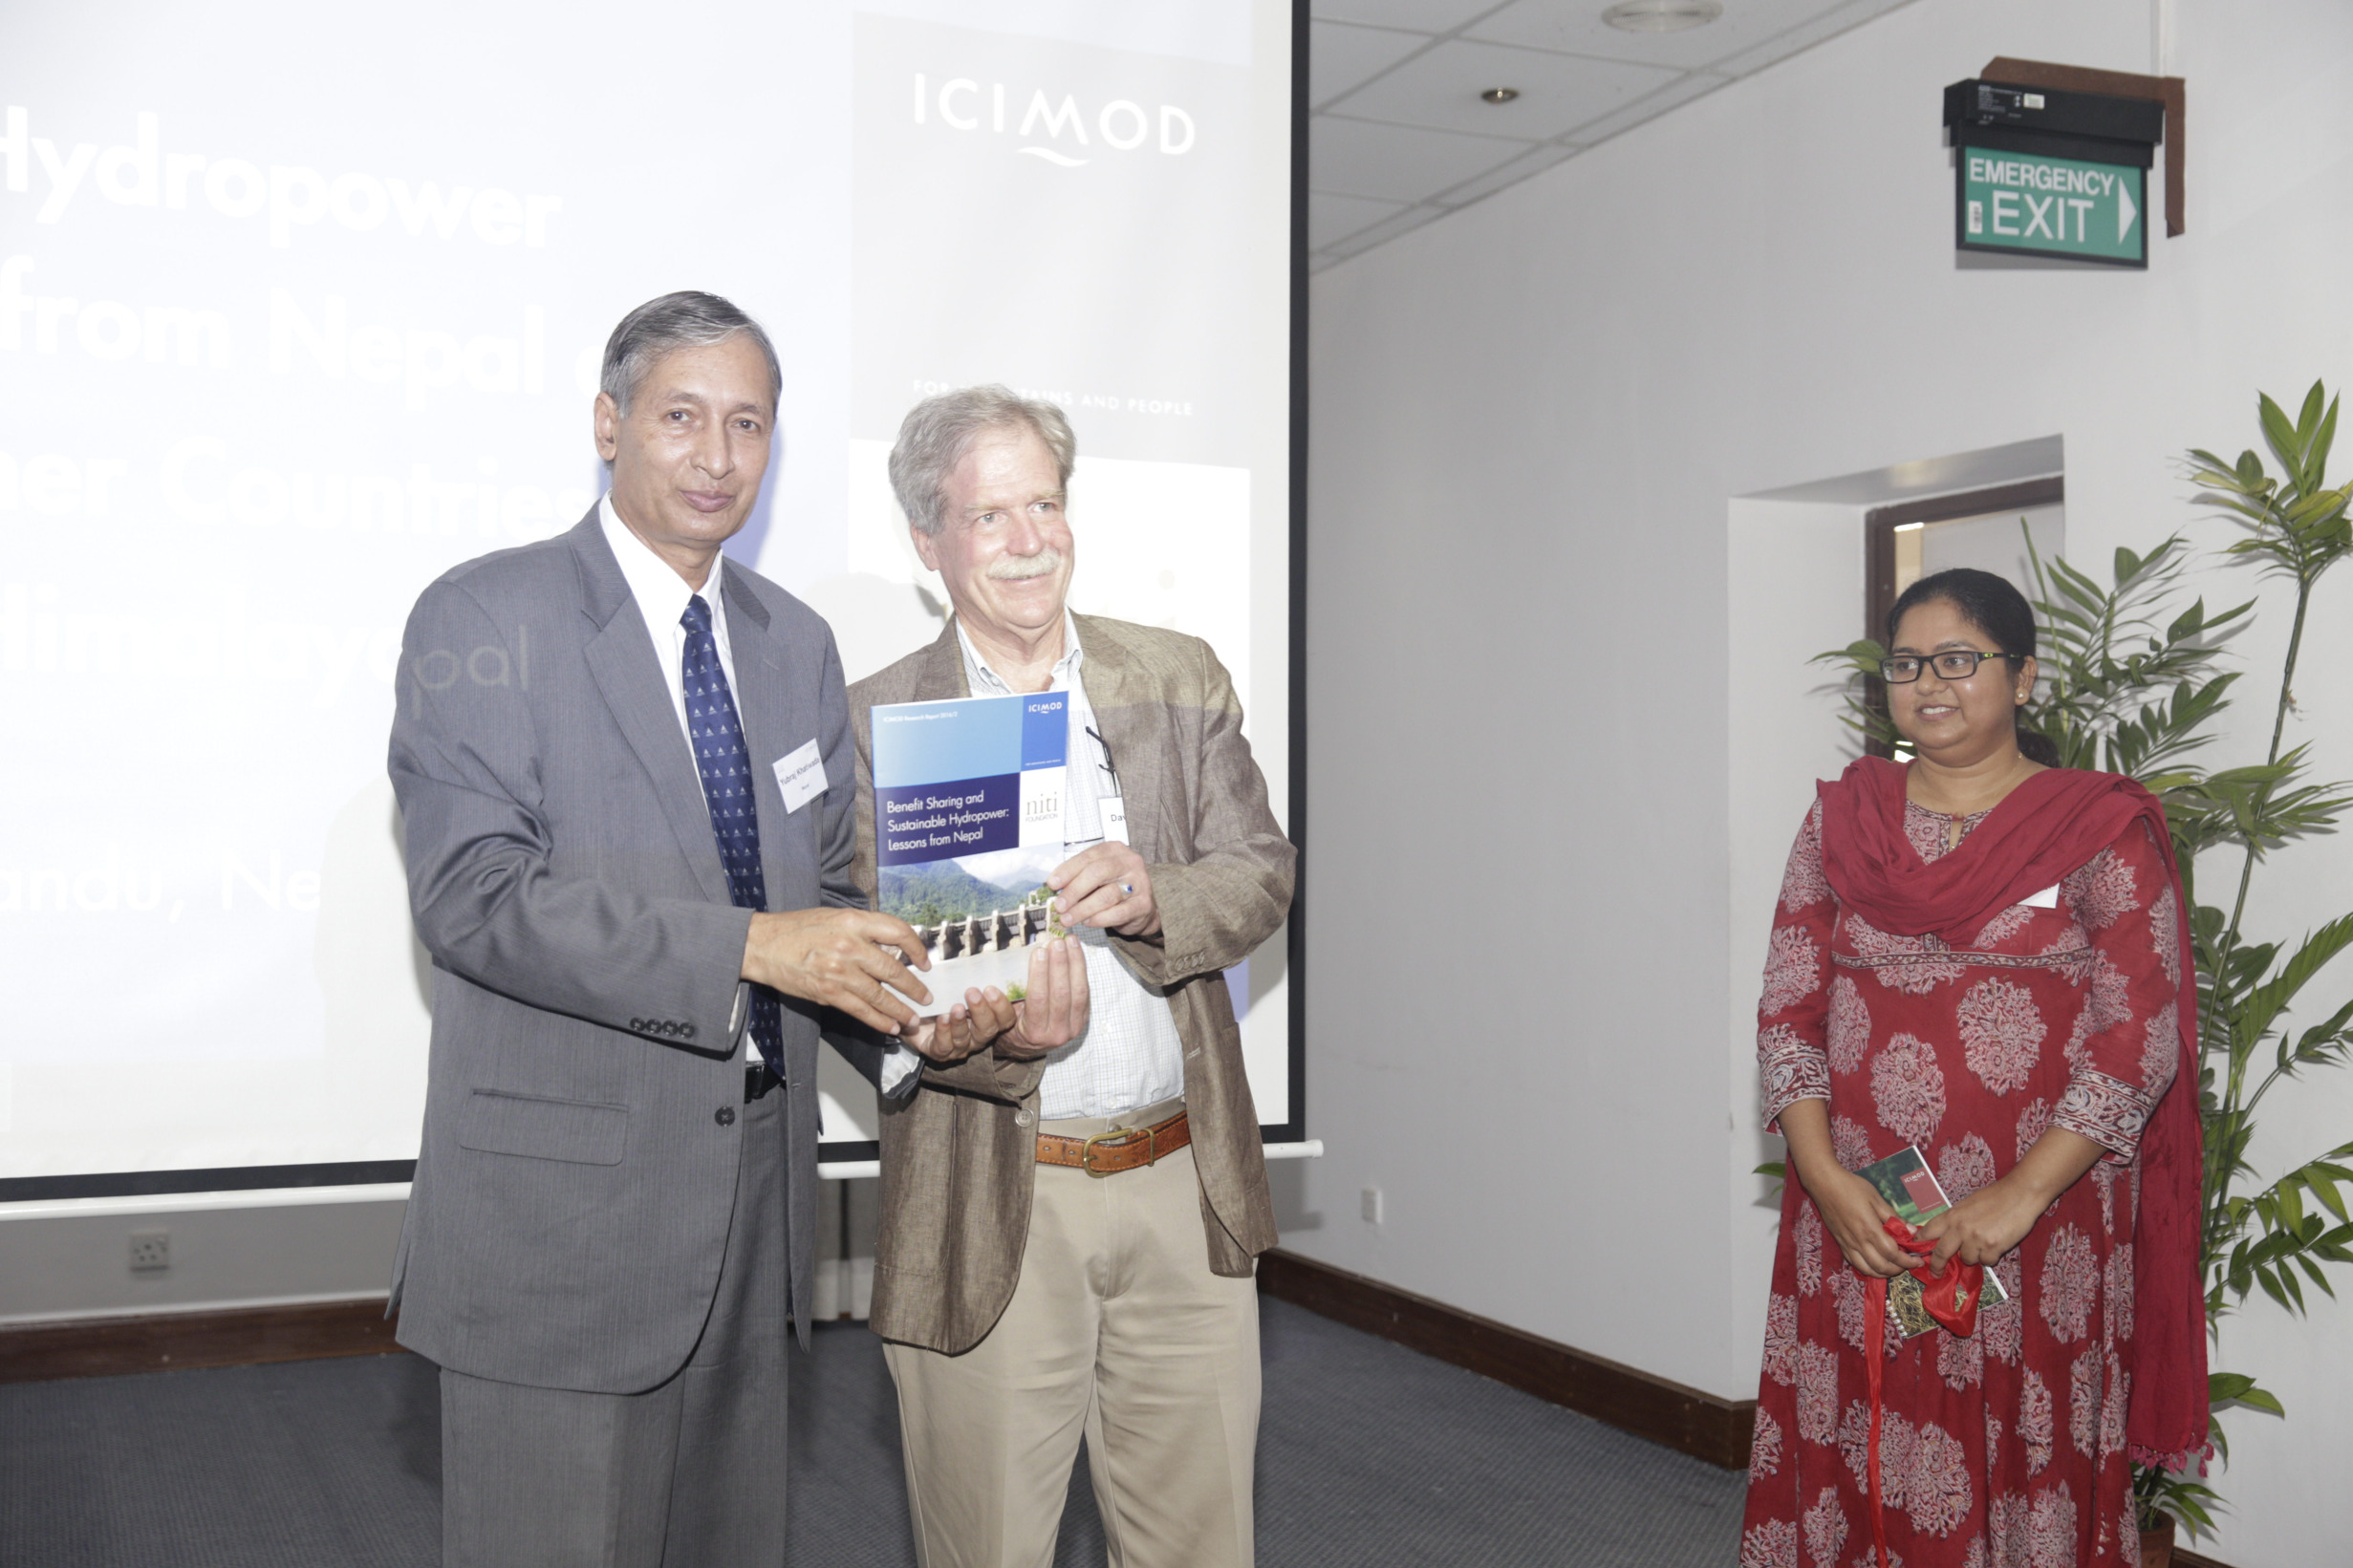 ubraj Khatiwada, Vice Chairperson of the National Planning Commission, and Director General of ICIMOD, David Molden, launched a report on Benefit Sharing and Sustainable Hydropower: Lessons from Nepal. Aditi Mukherji, Theme Leader for Water and Air, ICIMOD standing on the right. (Photo:Jitendra Bajracharya/ICIMOD)